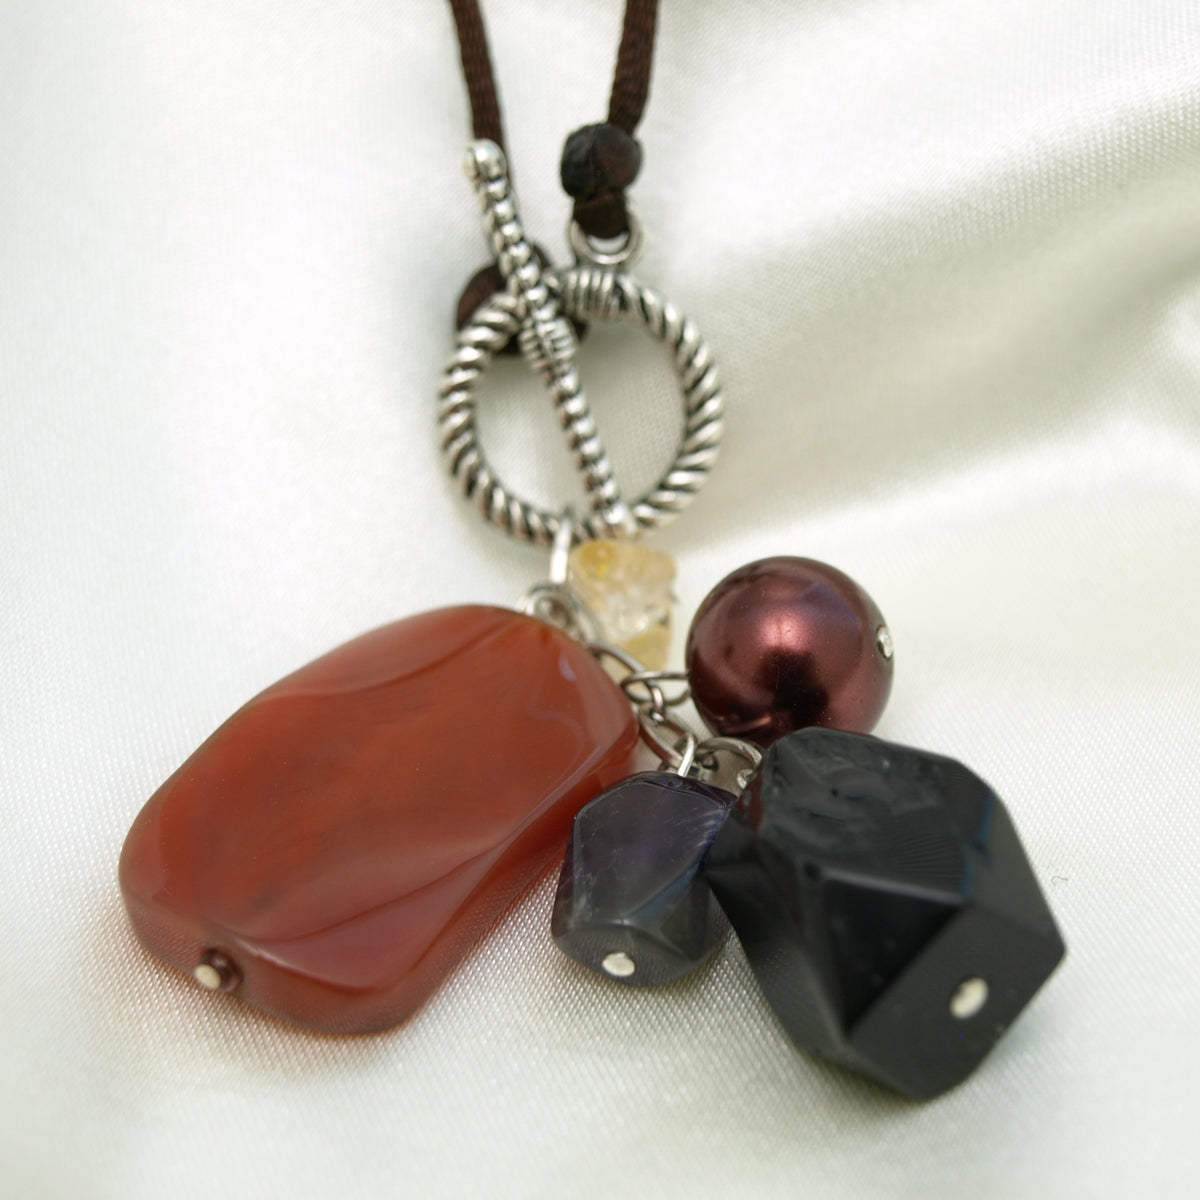 Gemstone Charm Pendant Necklace